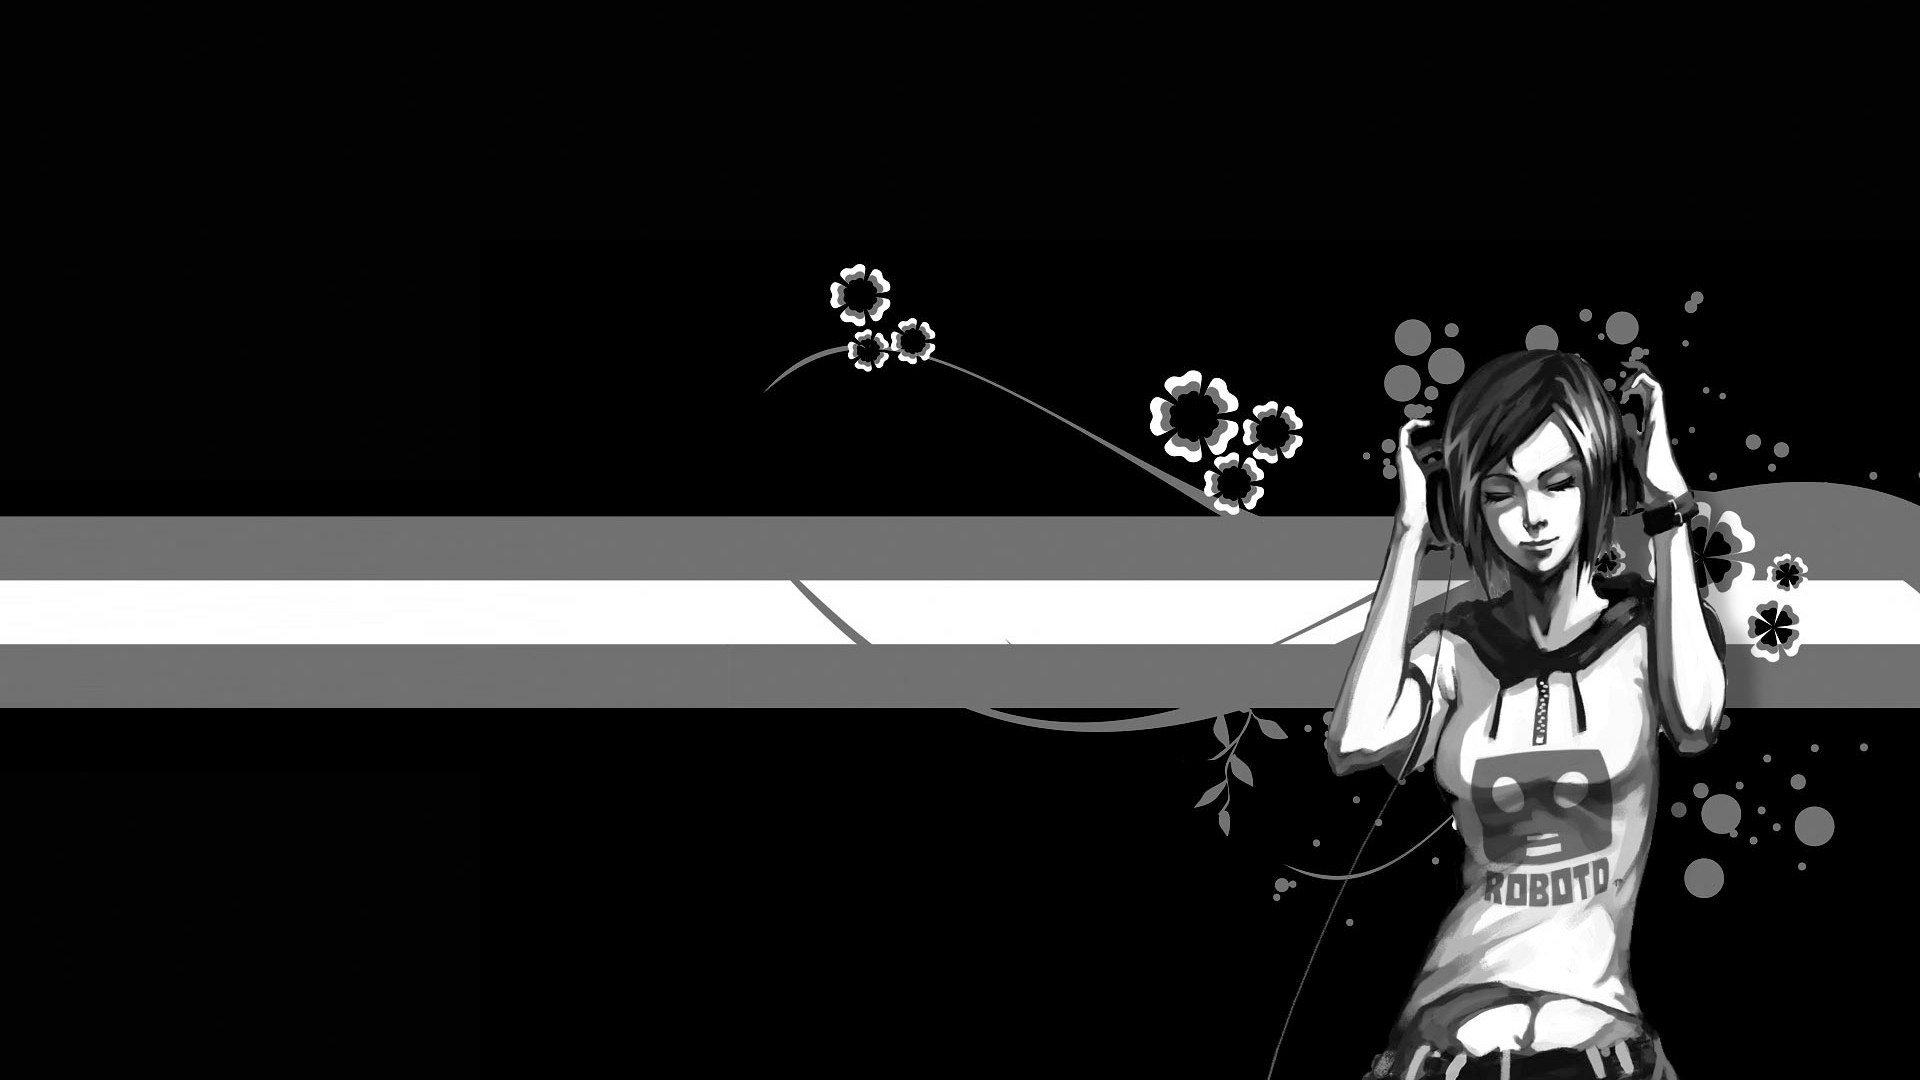 Free Download Black And White Girly Wallpapers Myspace Black And